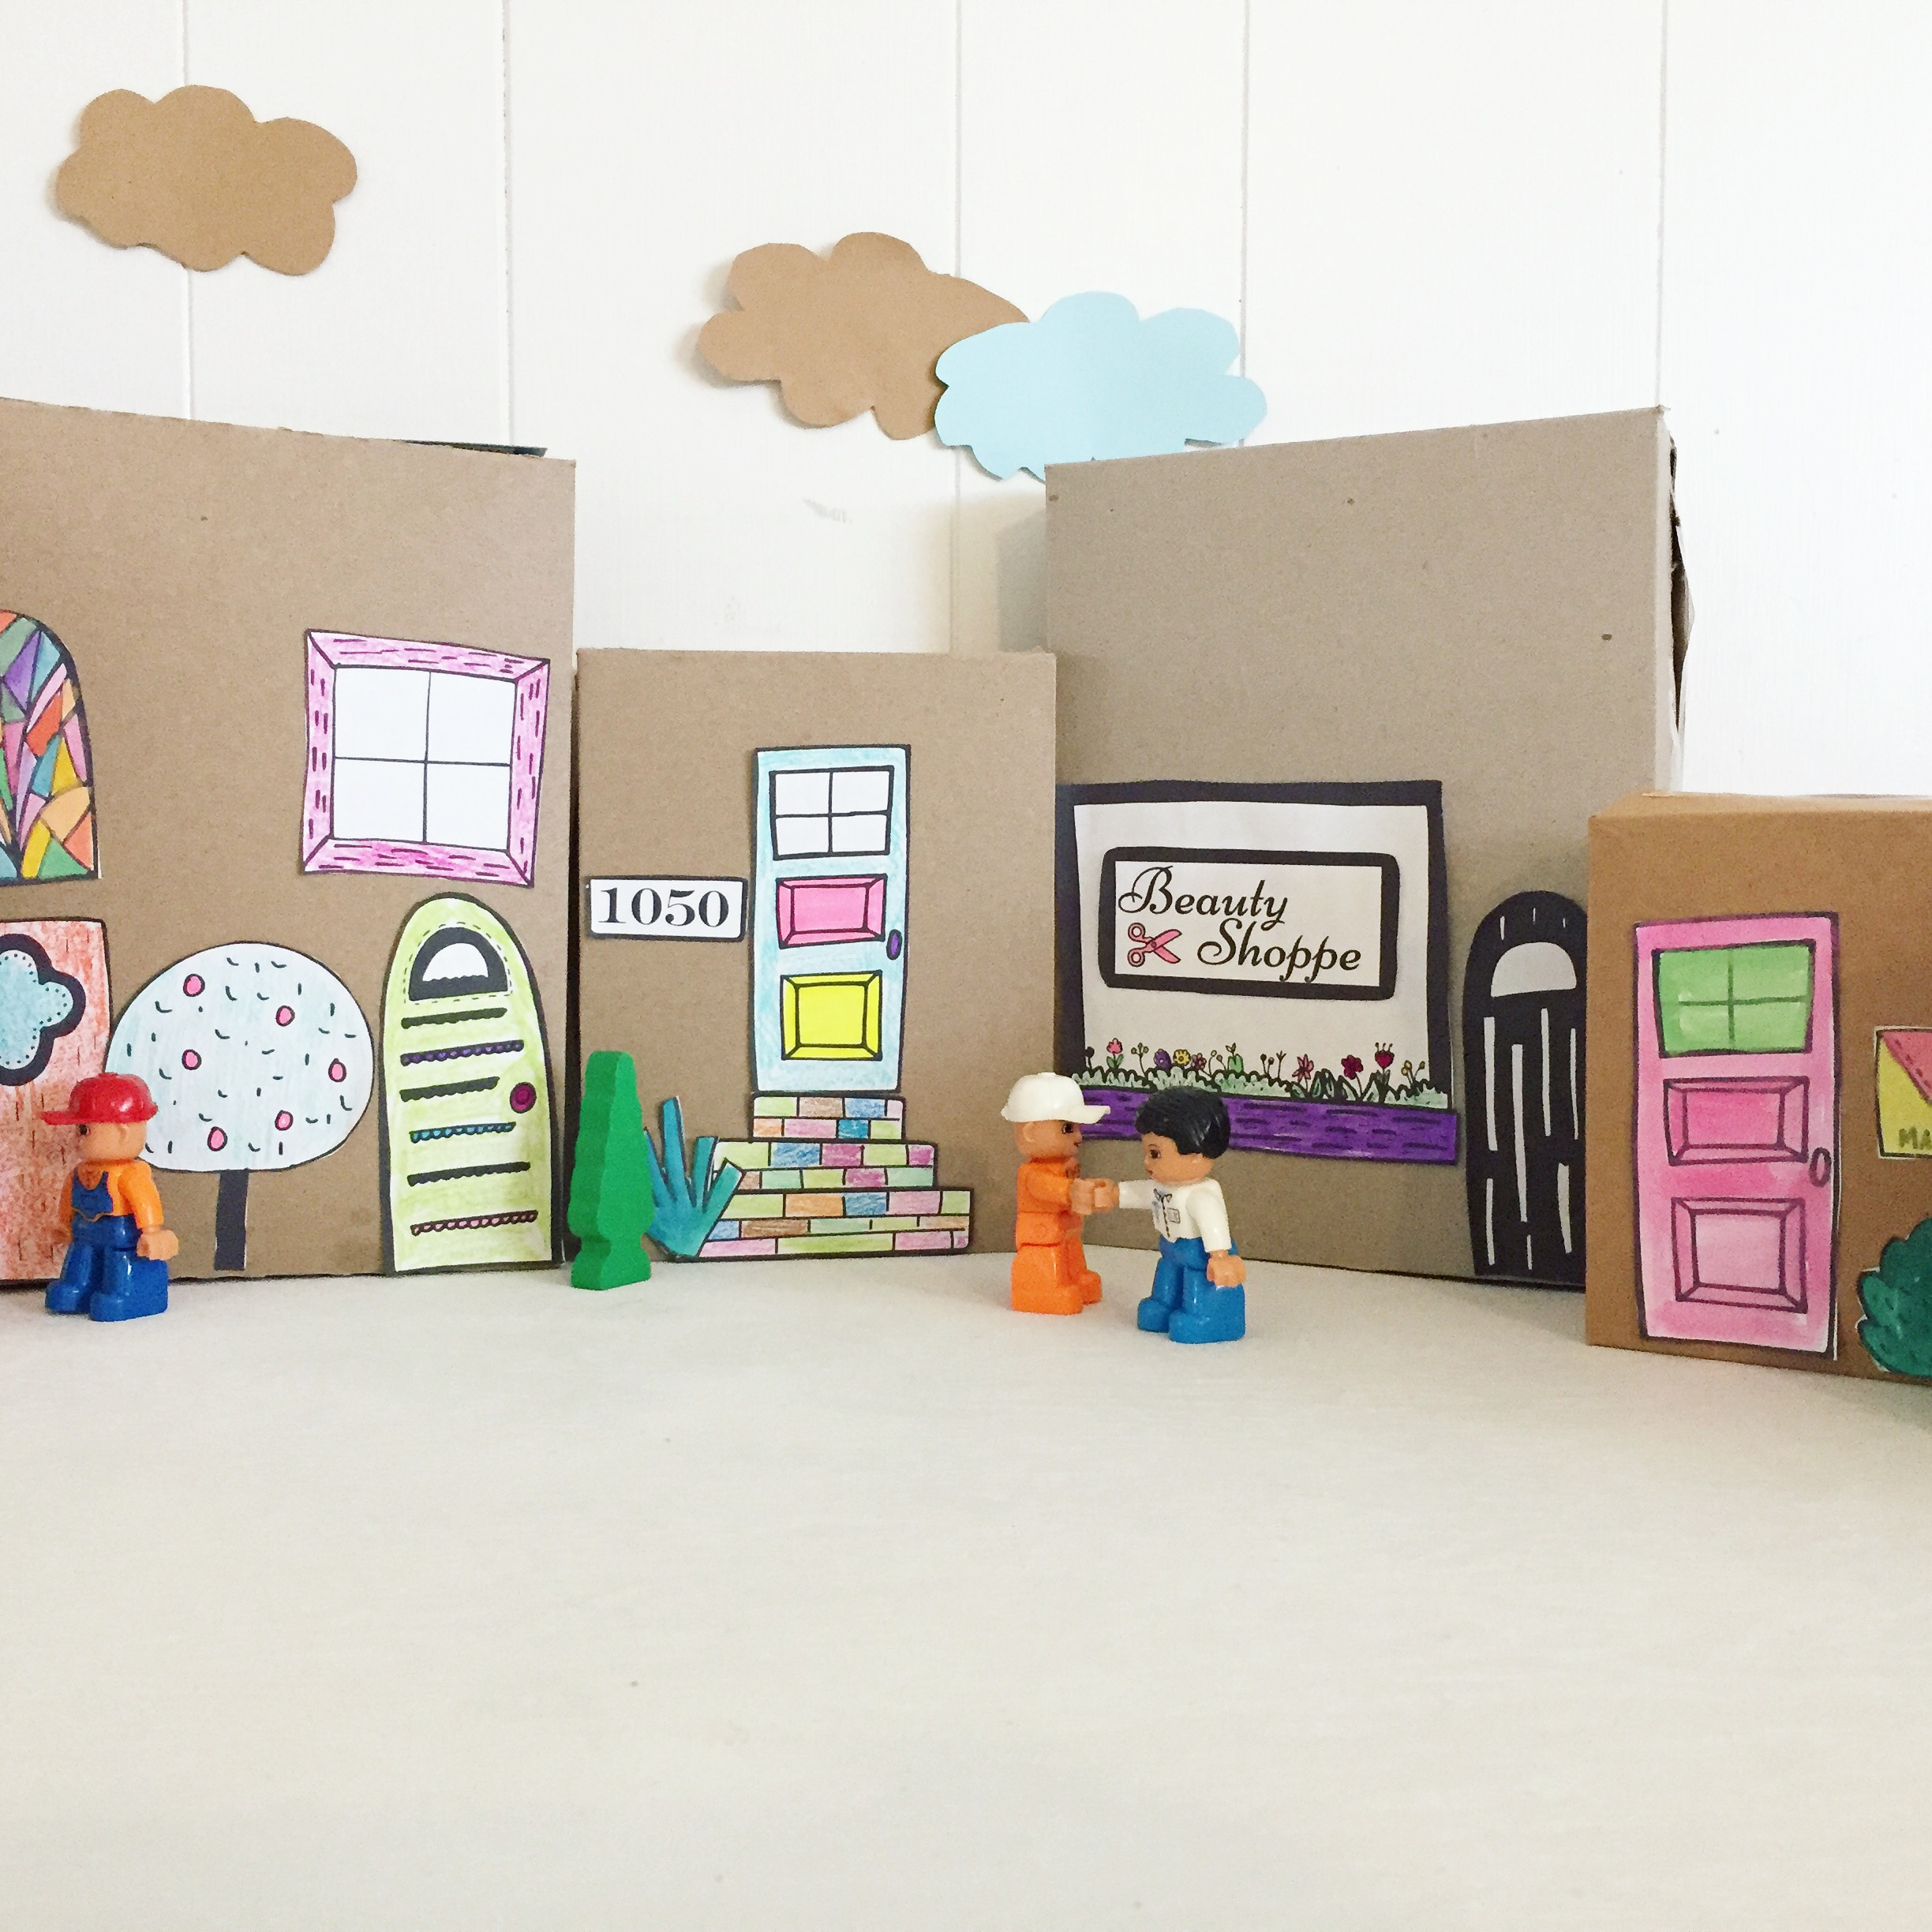 paper town illustrations